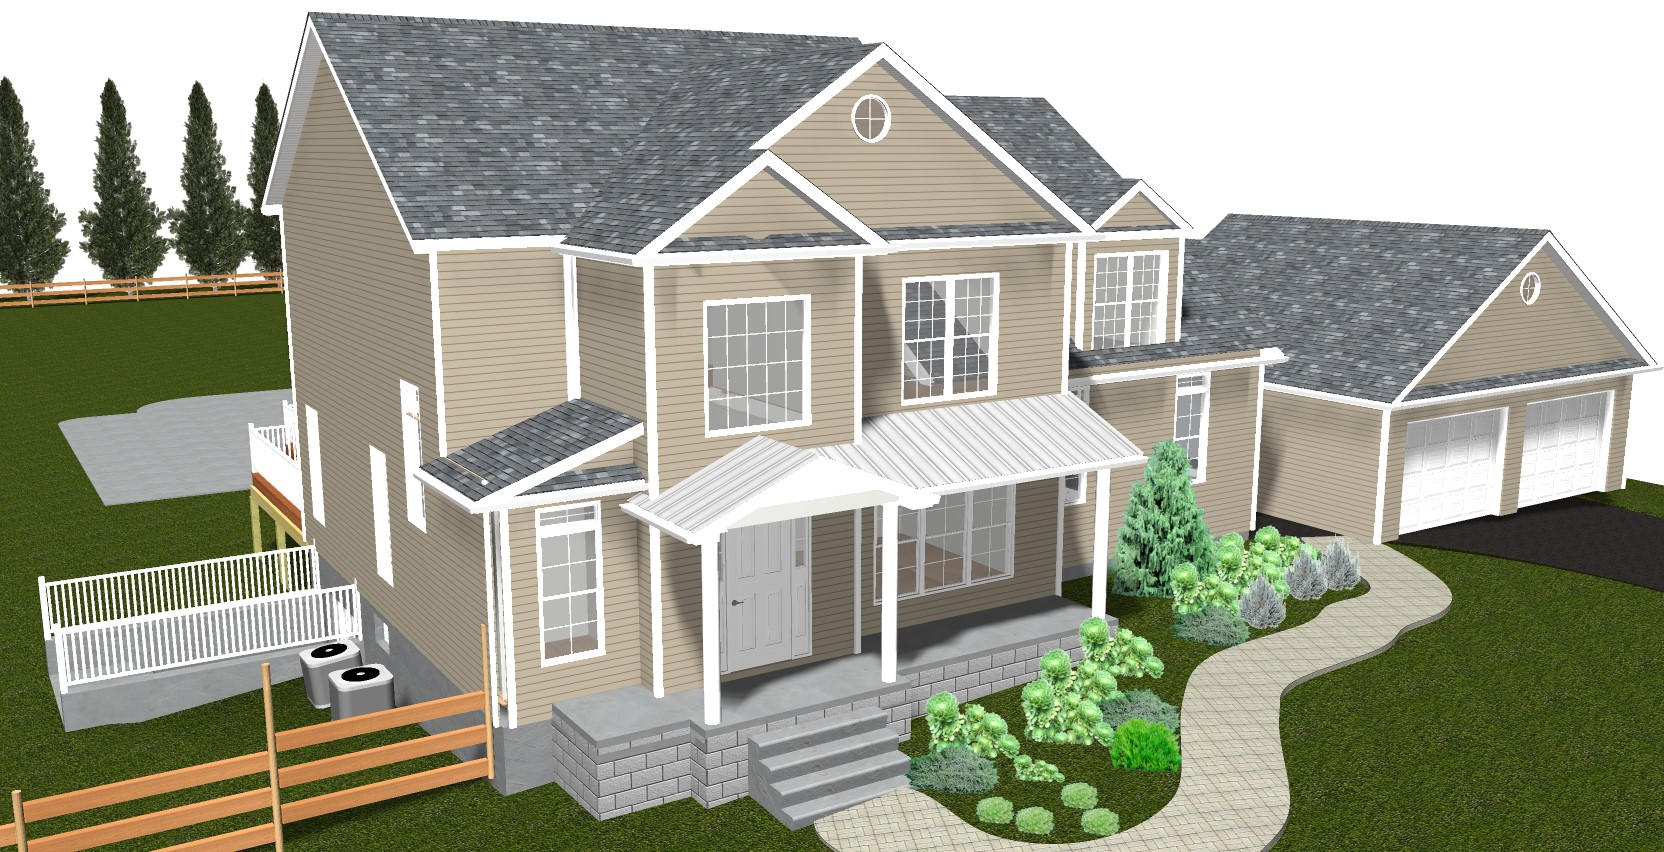 elaborate 3D rendering of exterior home remodel